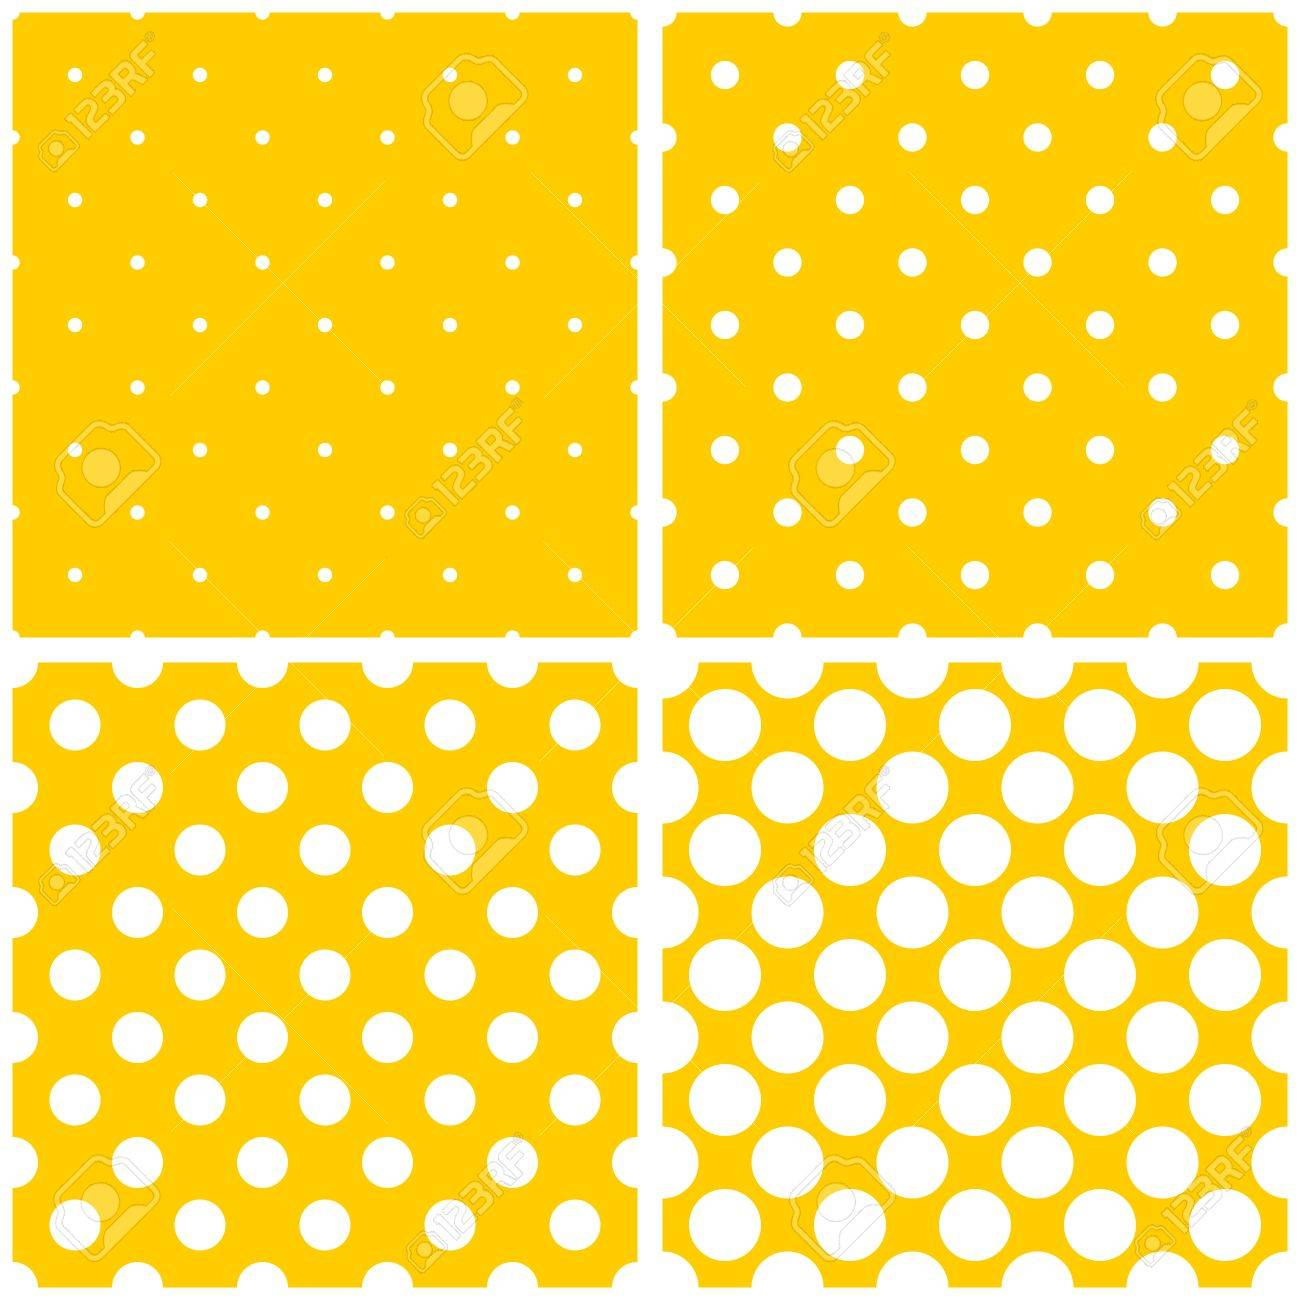 Tile Vector White Polka Dots On Yellow Background Pattern Set ...